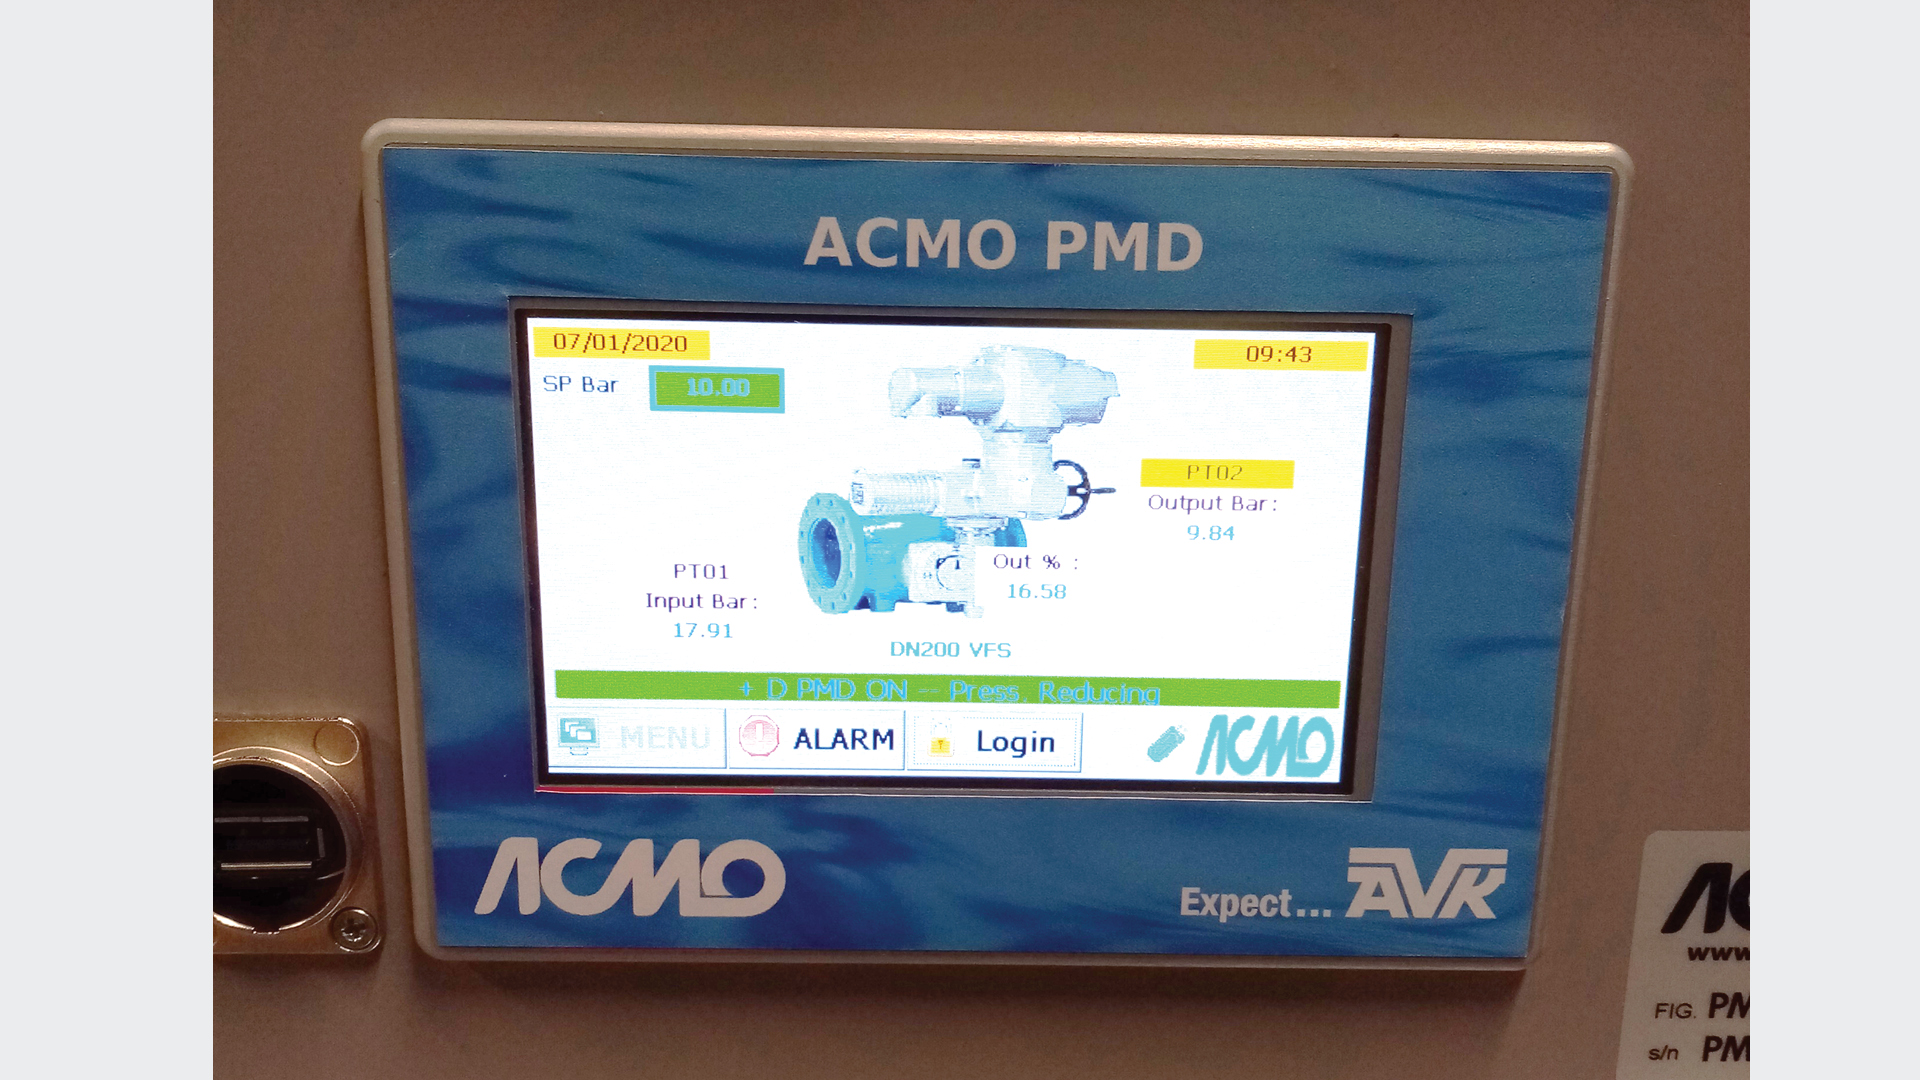 AVK Smart Water Pressure Management Device Display Monitor